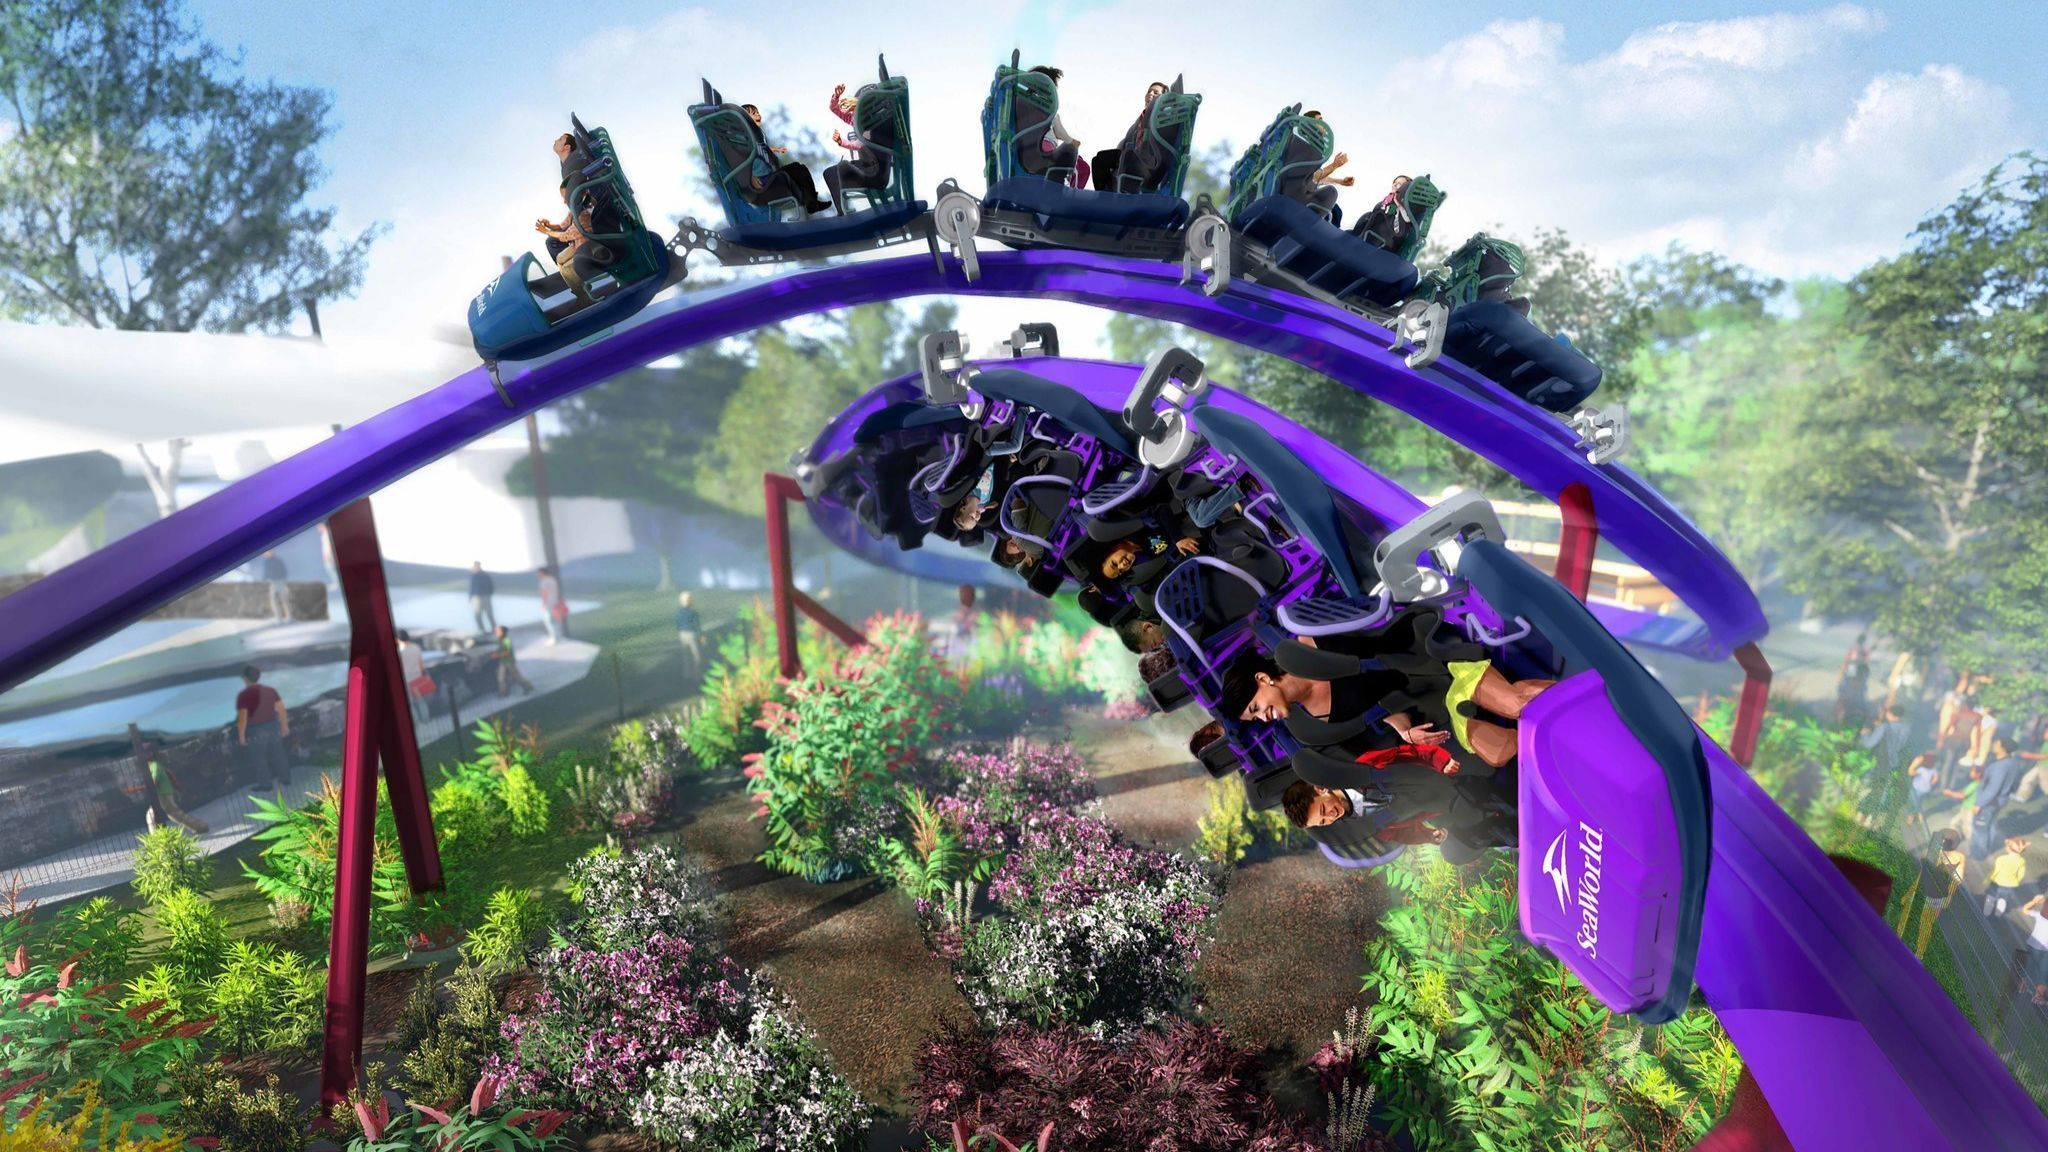 Is SeaWorld's Tidal Twister dueling coaster really a coaster and can it actually duel?